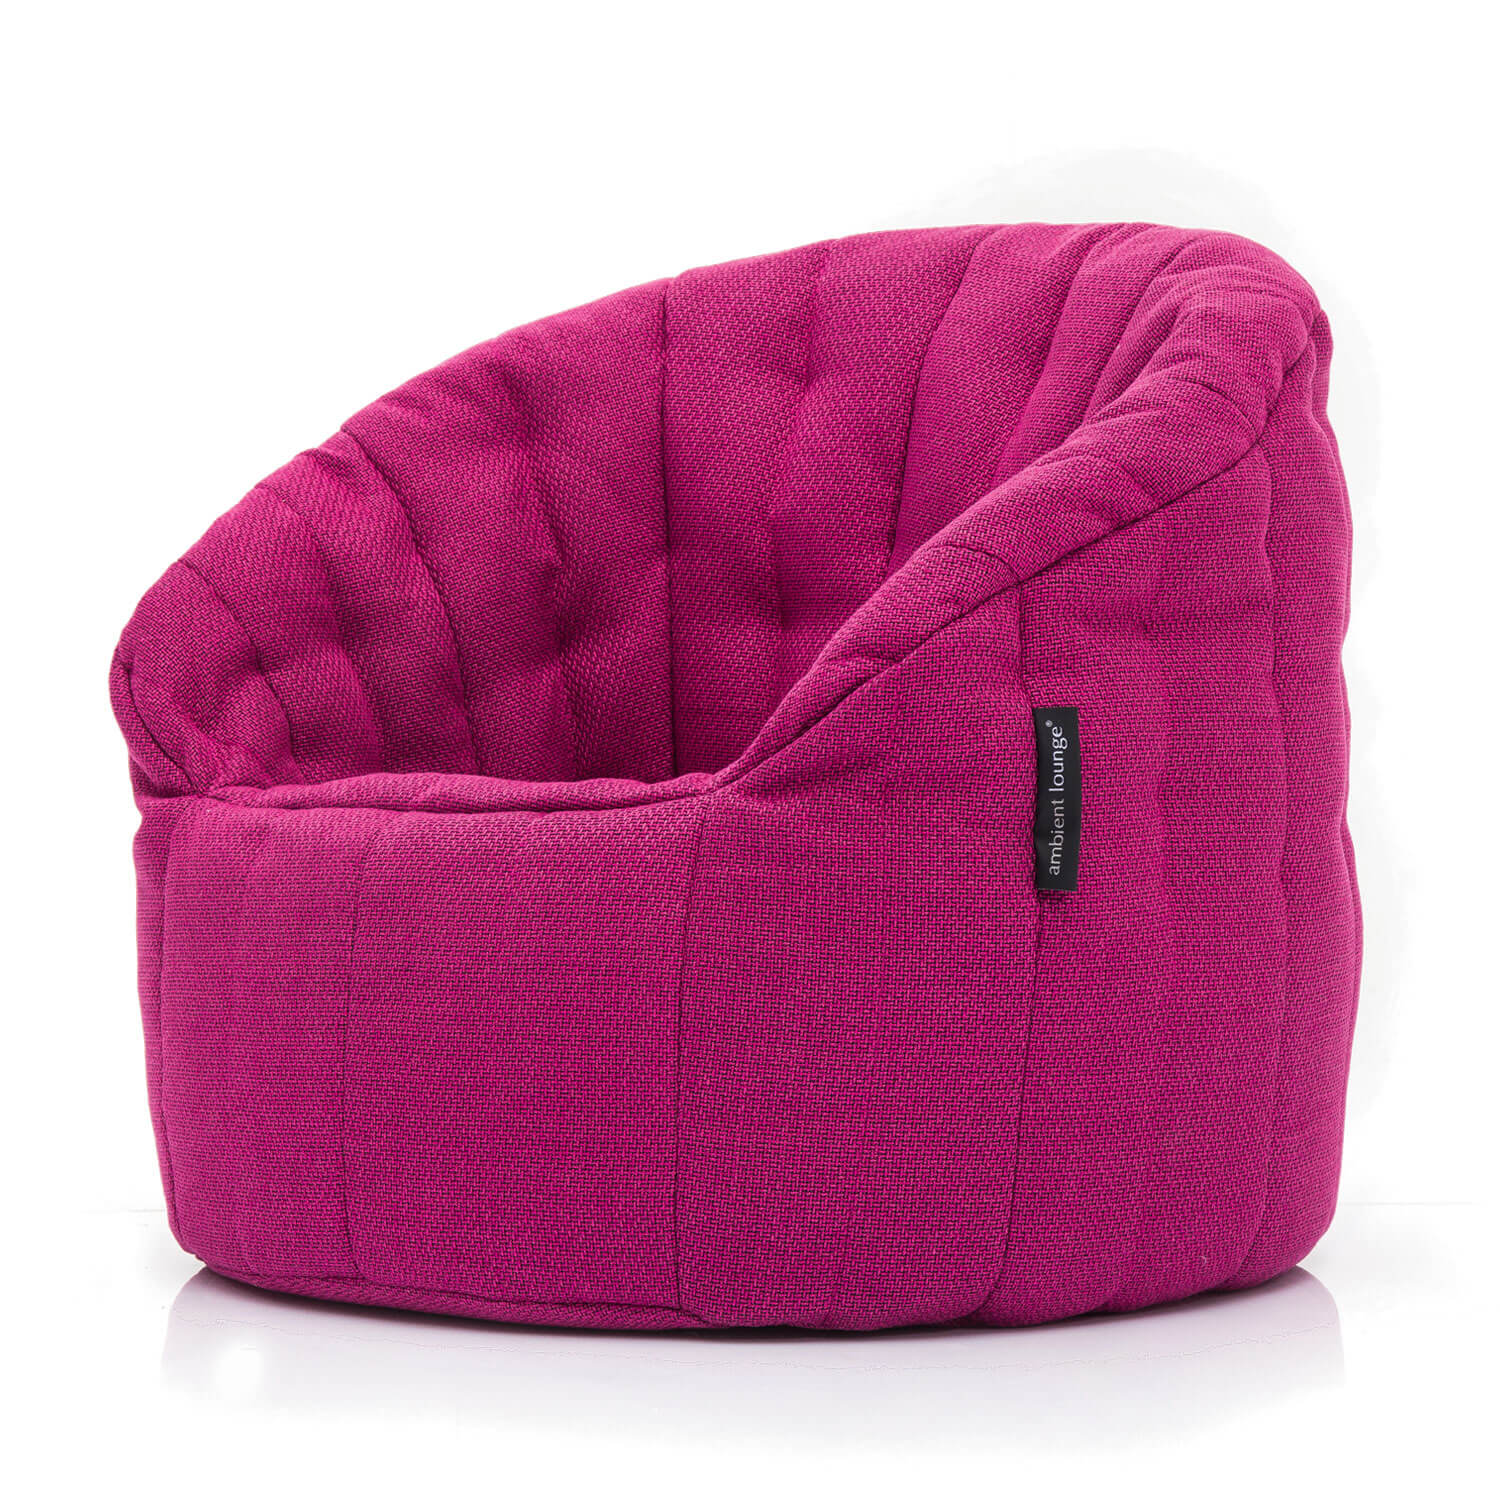 Butterfly Sofa Gorgeous Pink Bean Bag For Designer